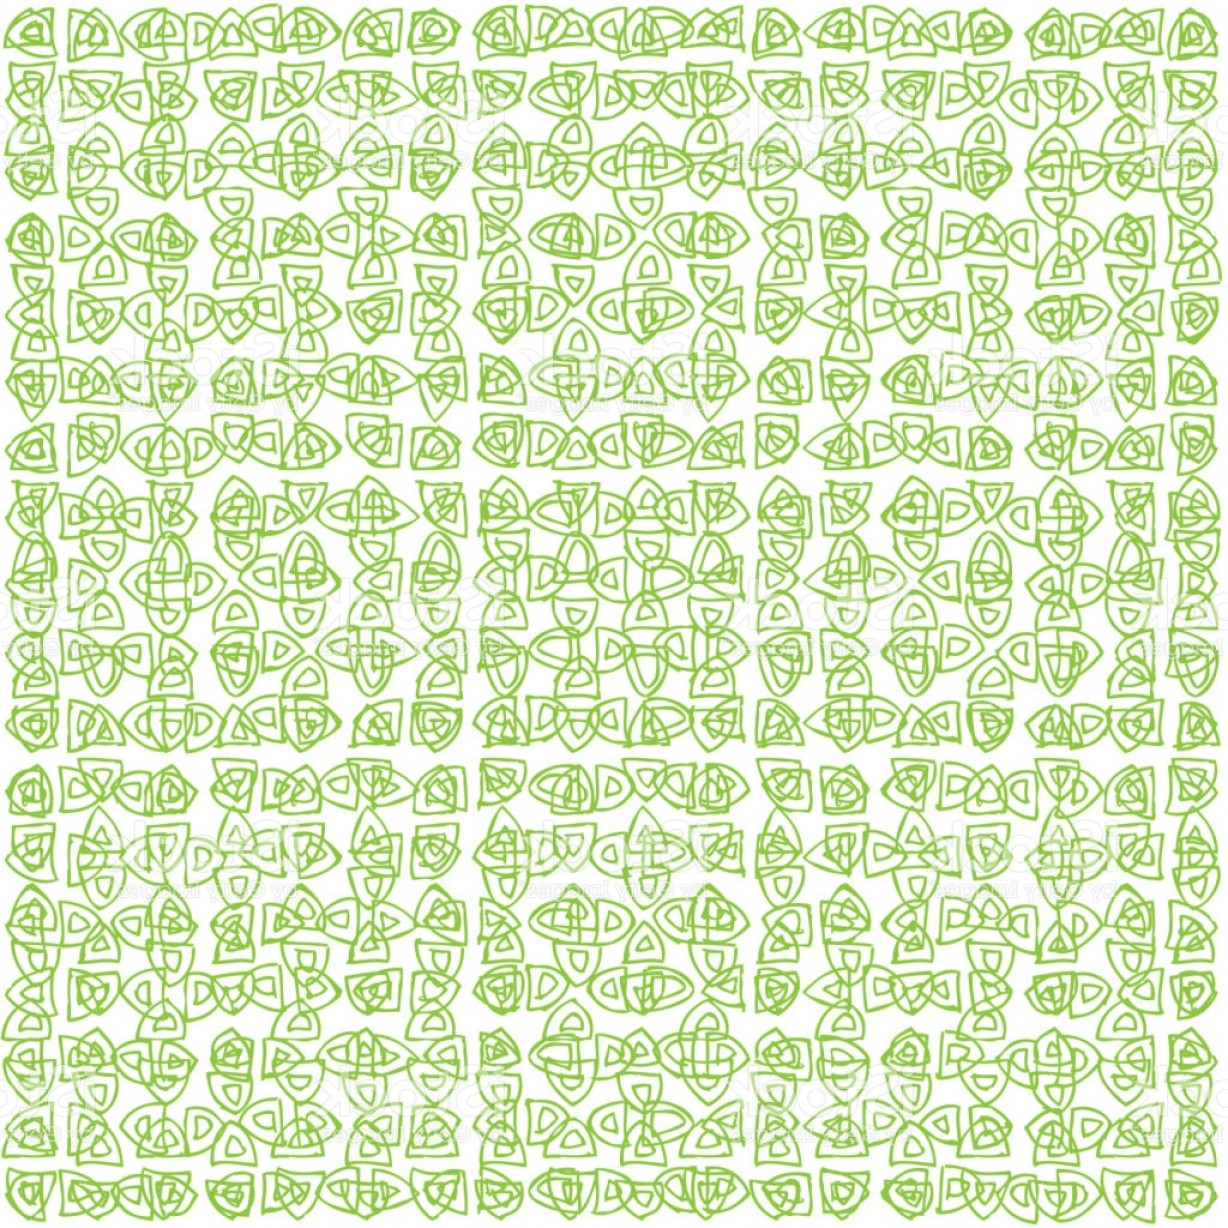 Security Vector Patterns: Seamless Pattern In Green Color Inspired By Banknote And Money Security Watermark Gm